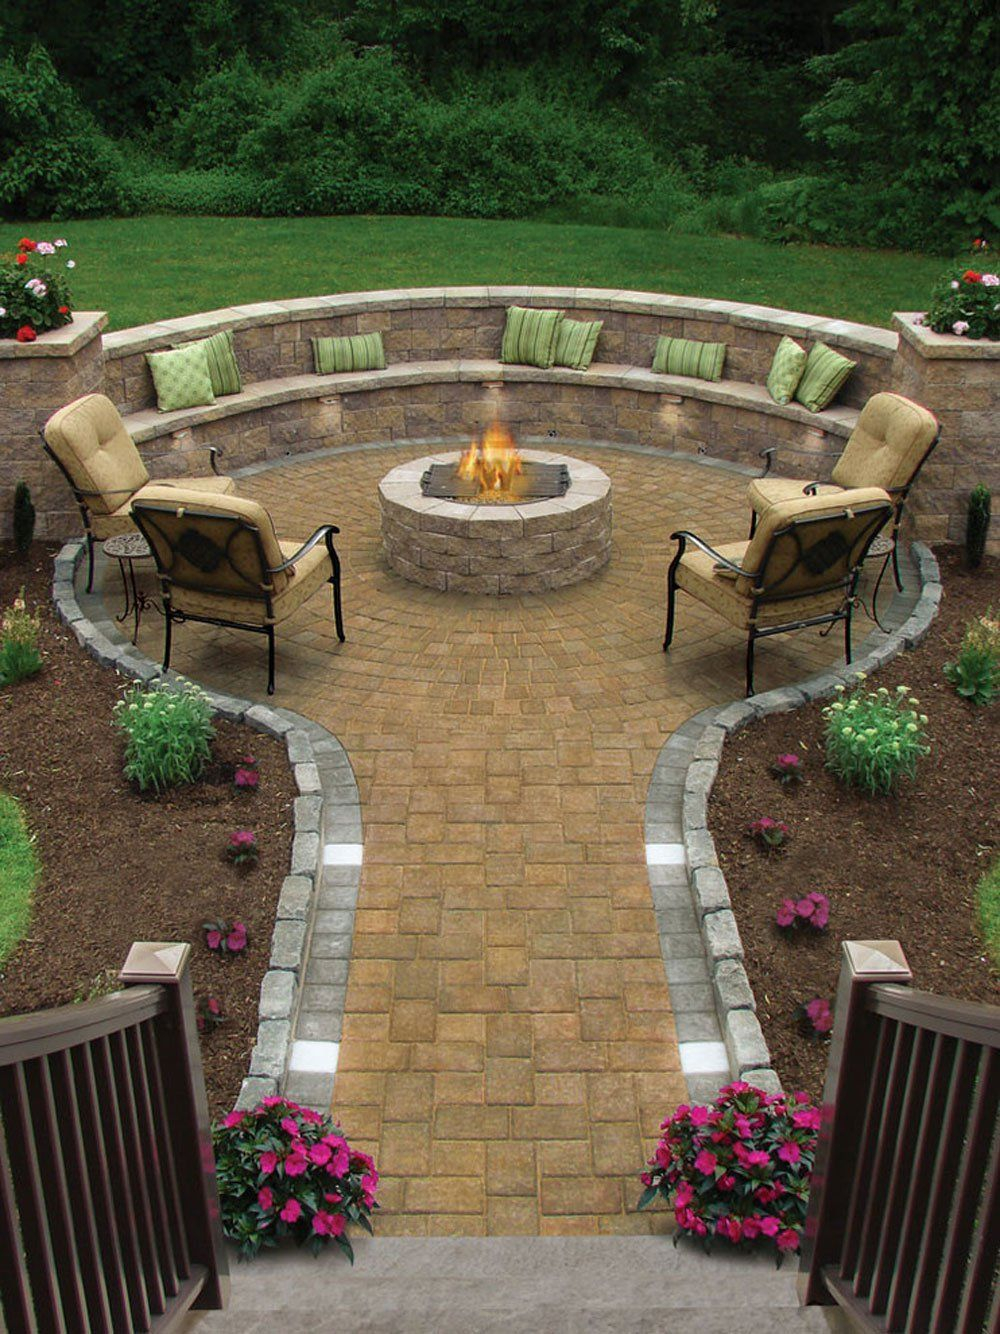 17 Of The Most Amazing Seating Area Around The Fire Pit Ever regarding dimensions 1000 X 1334